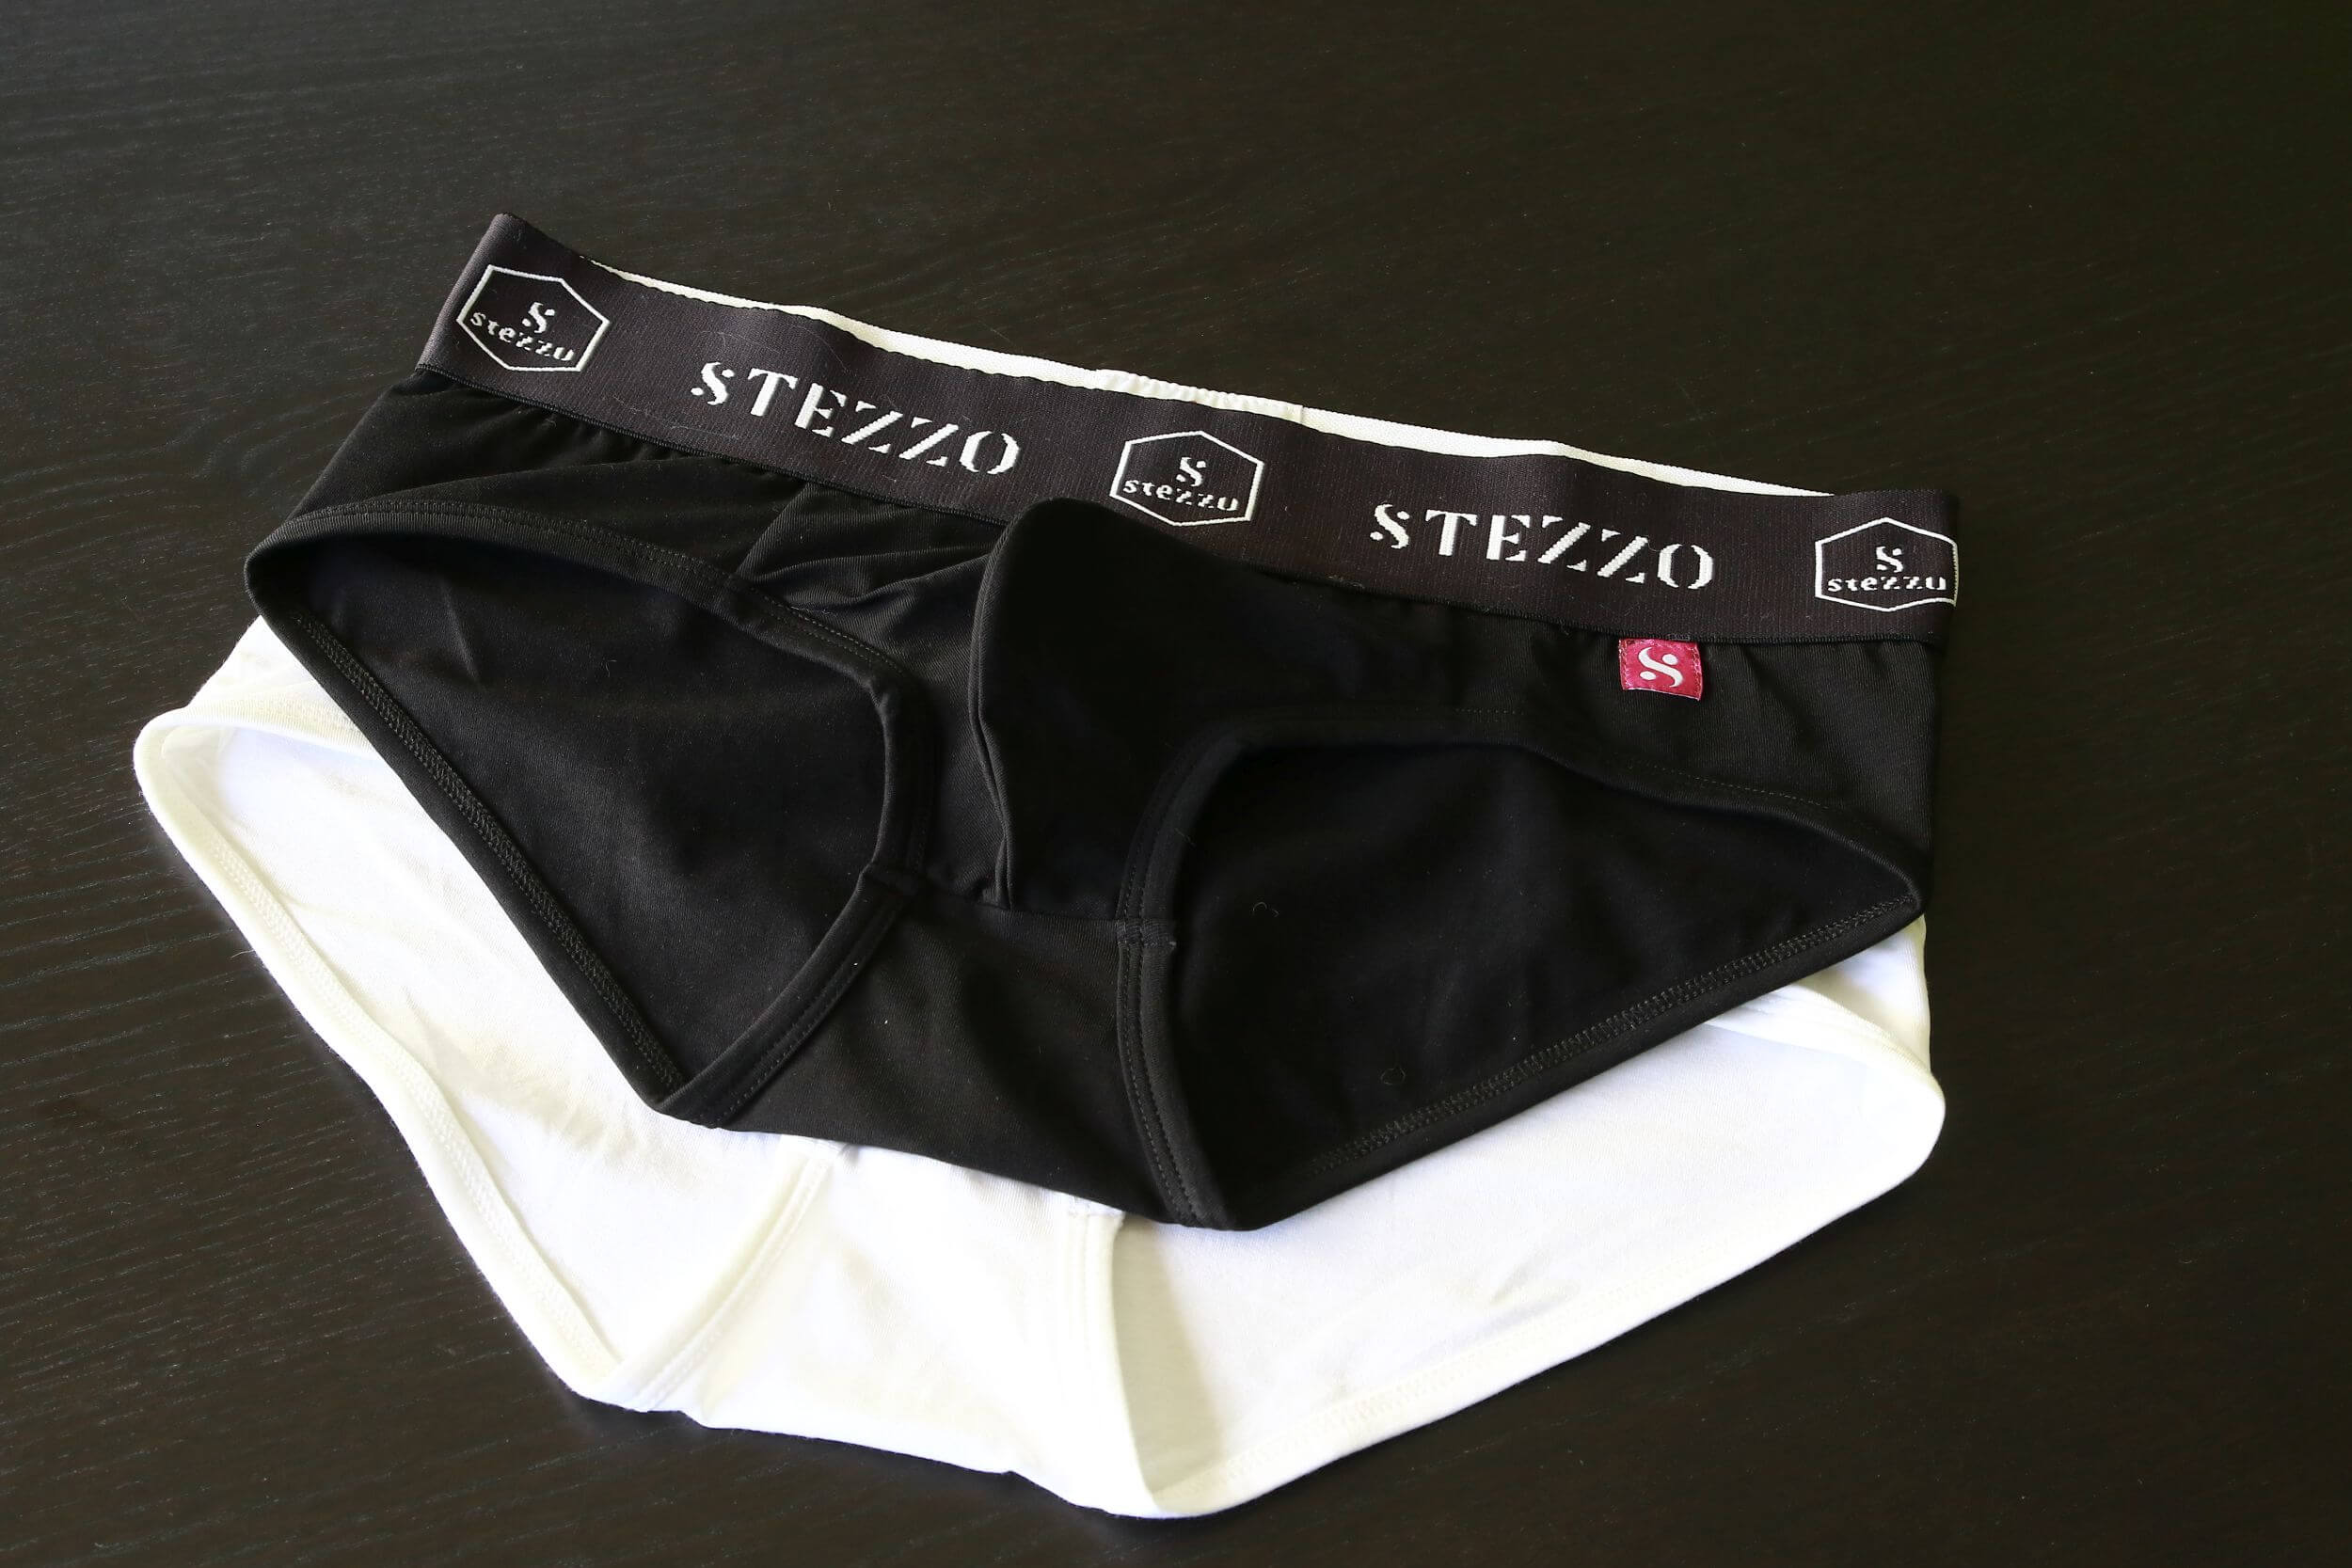 Stezzo-Men's-Underwear-Pack-Briefs